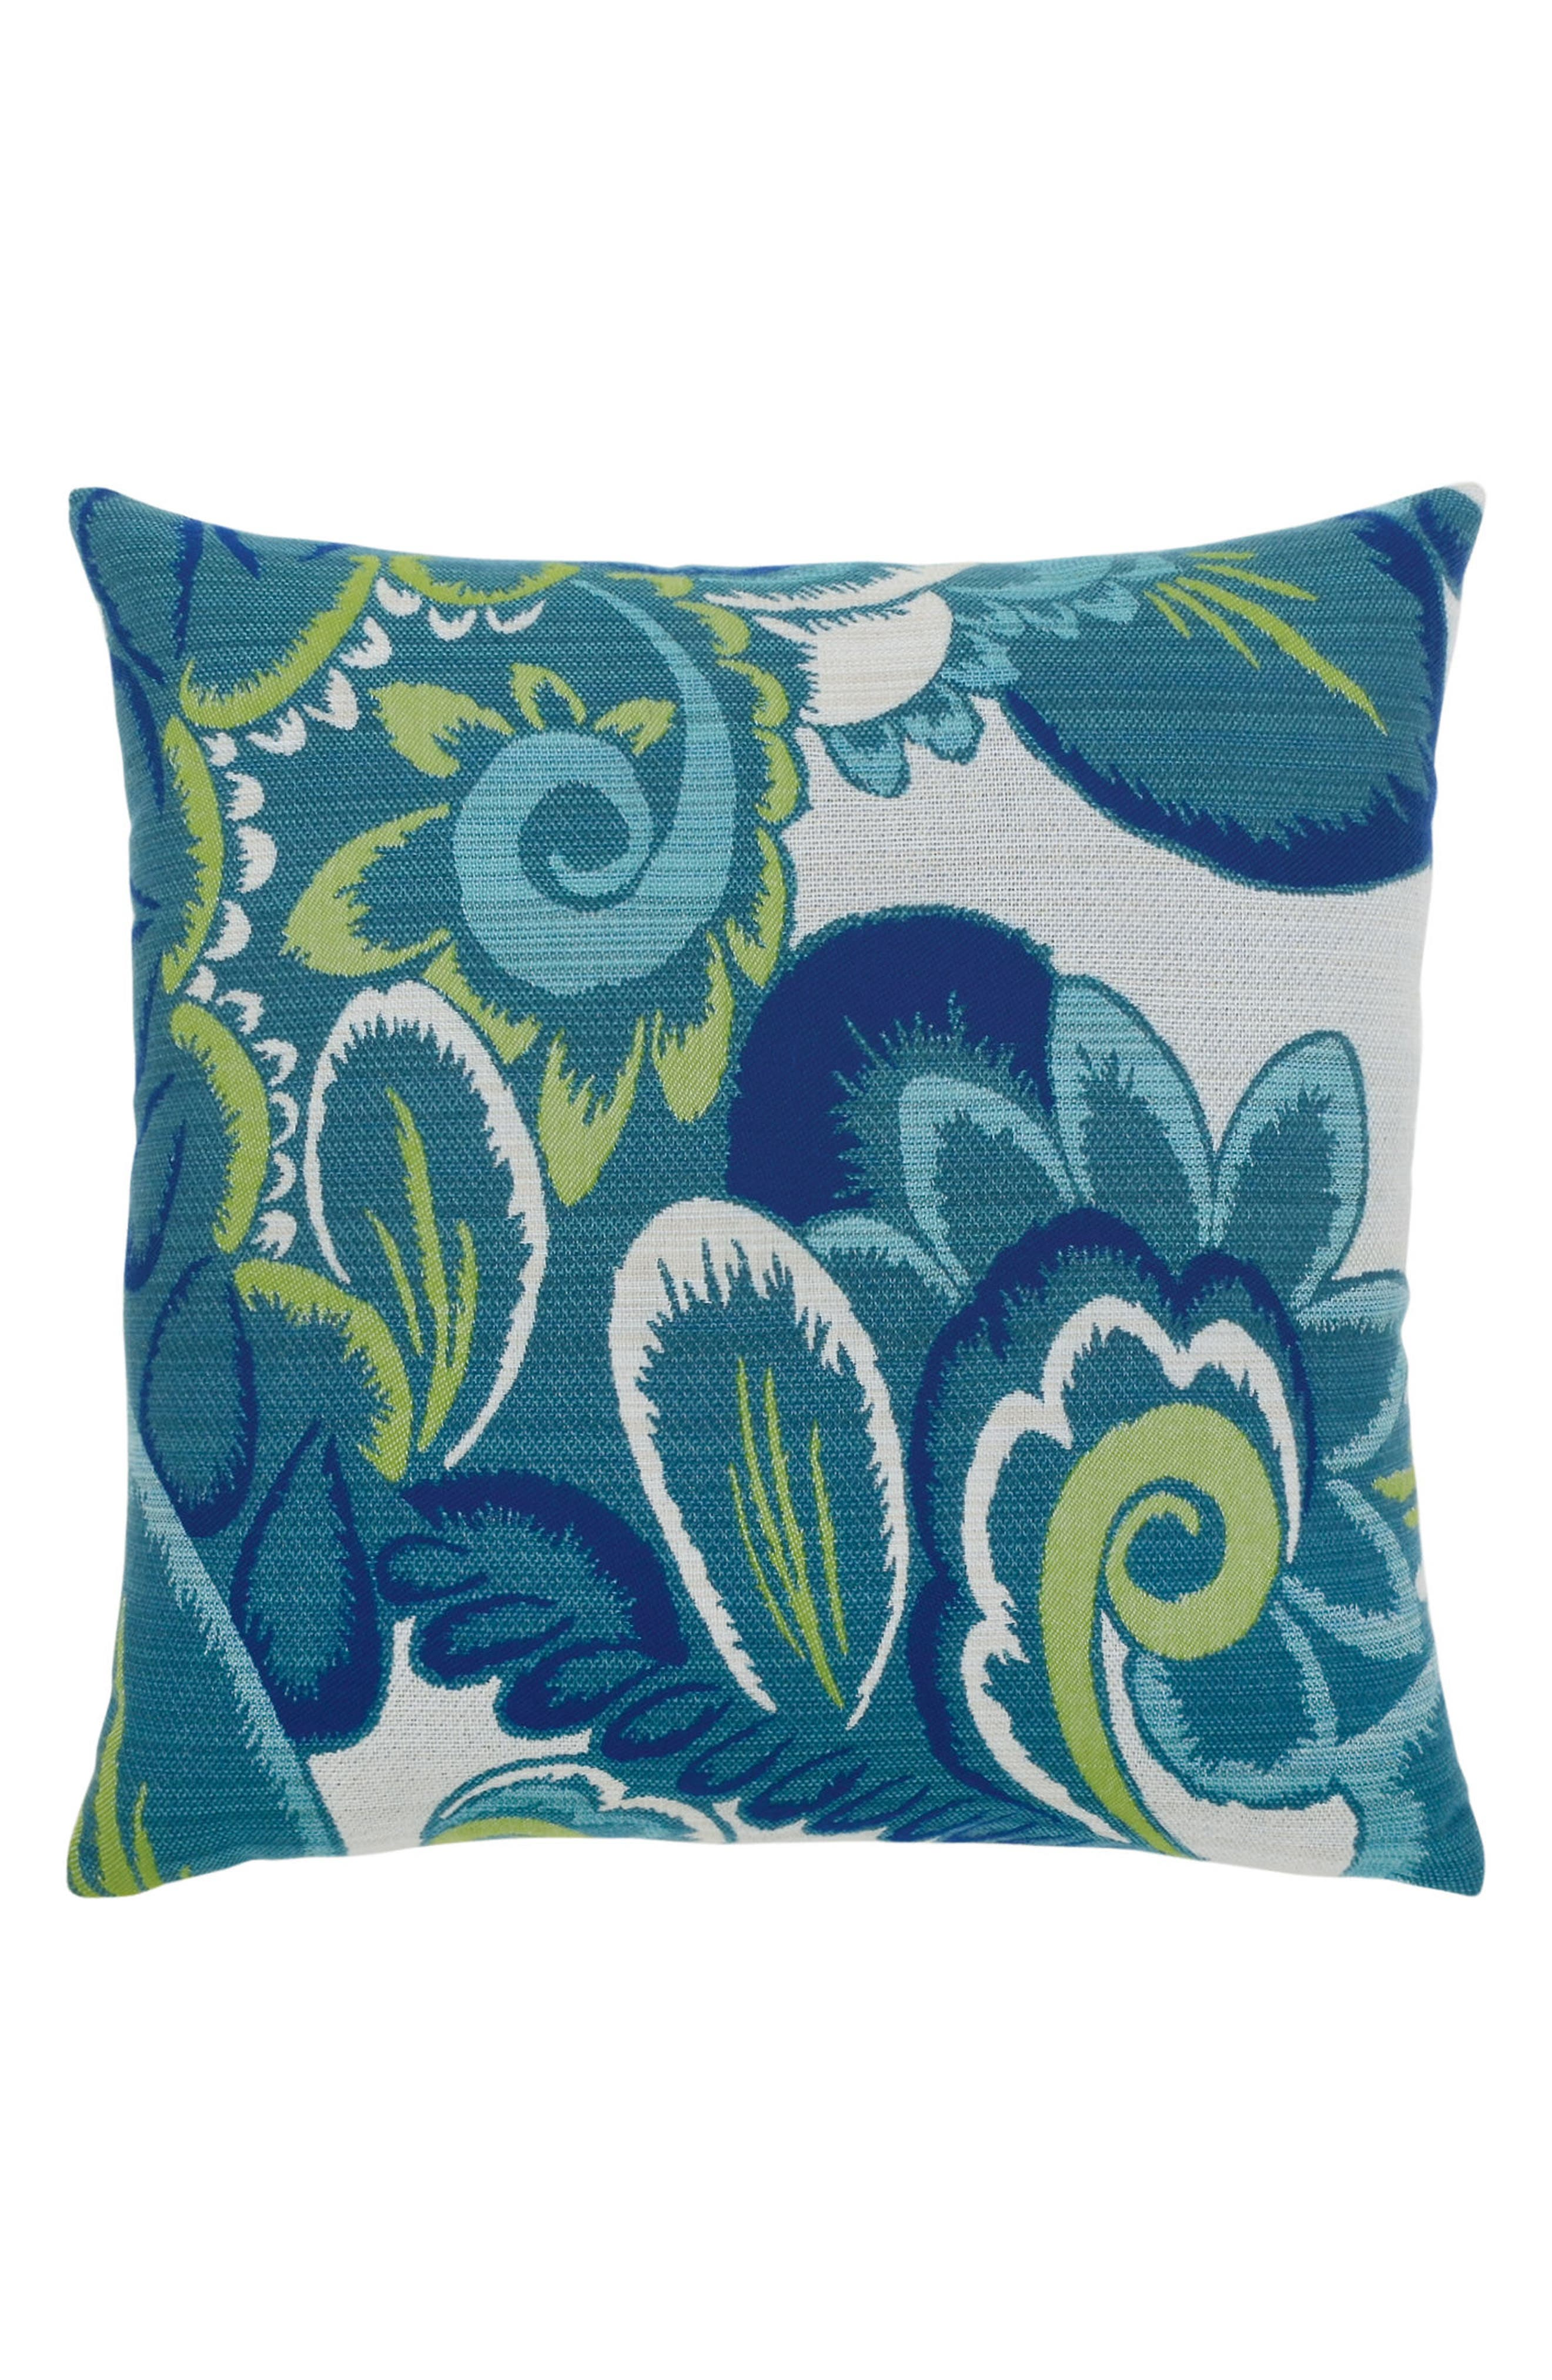 Floral Wave Indoor/Outdoor Accent Pillow,                             Main thumbnail 1, color,                             Blue/ Green